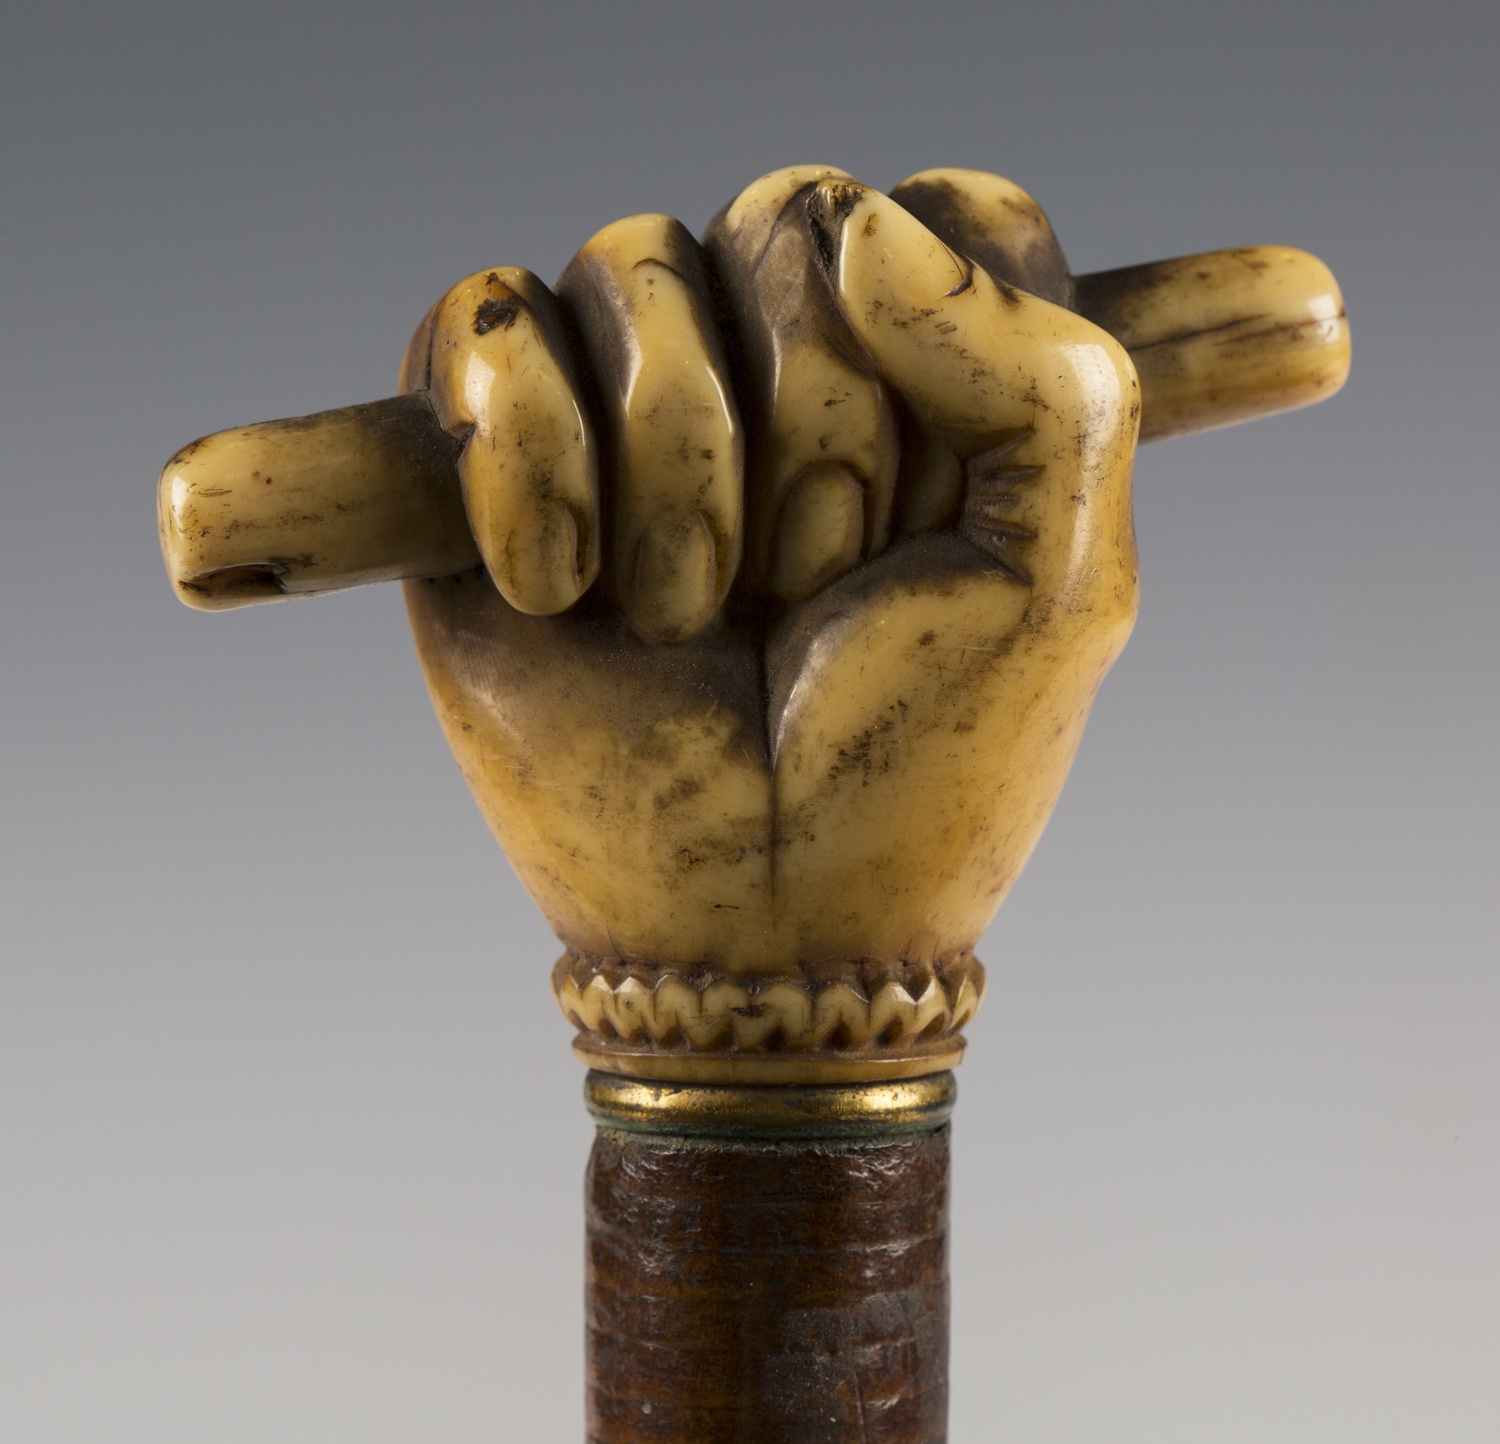 A 19th century sectional joined leather walking cane, the ivory handle carved as a hand holding a